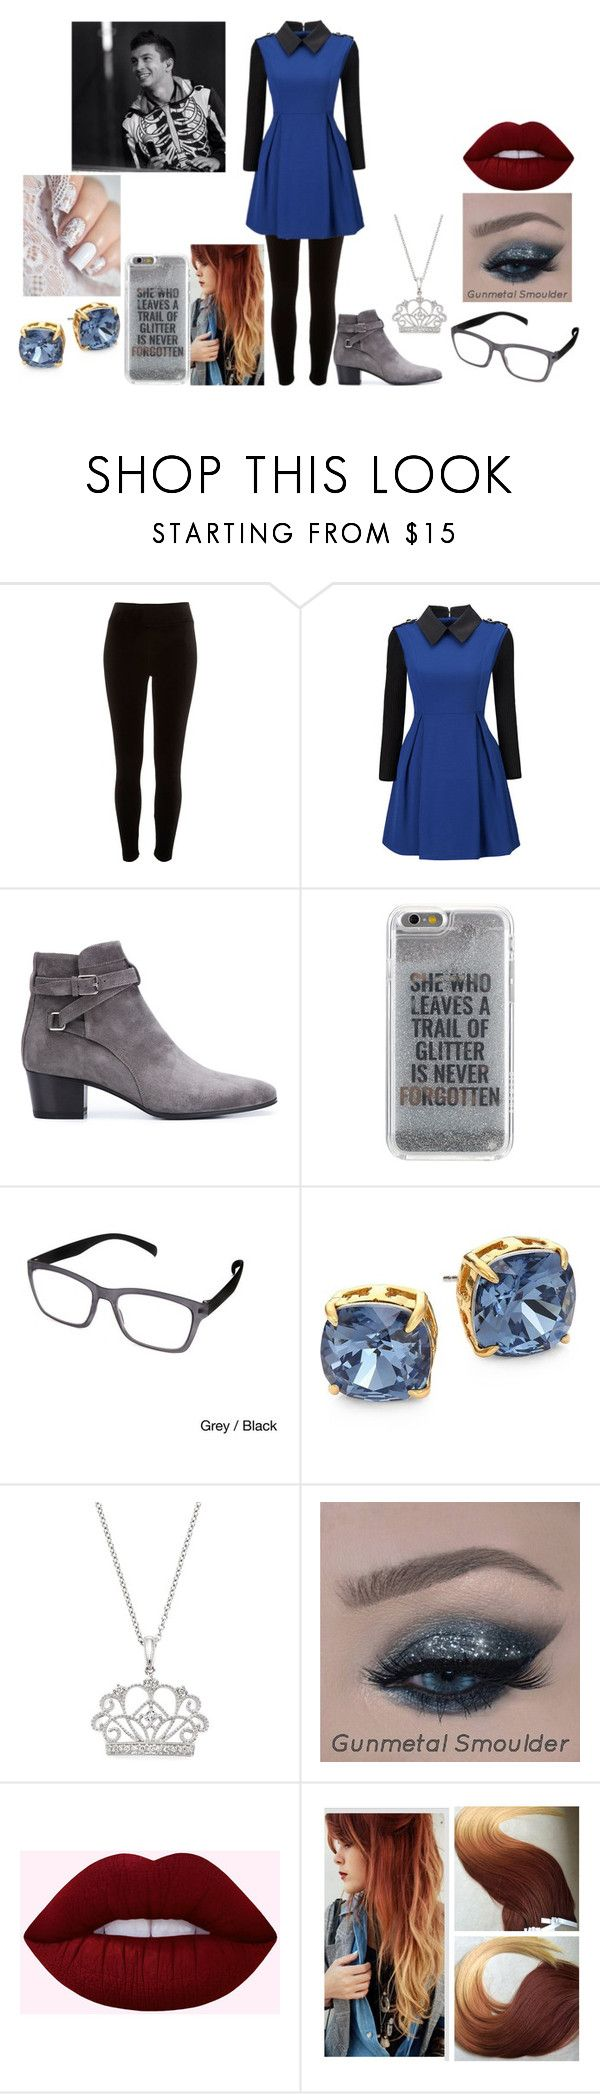 """Hanging Out With Tyler Joseph"" by teenaged-aliens ❤ liked on Polyvore featuring River Island, WithChic, Yves Saint Laurent, Agent 18, Hot Optix, Tory Burch and Bloomingdale's"